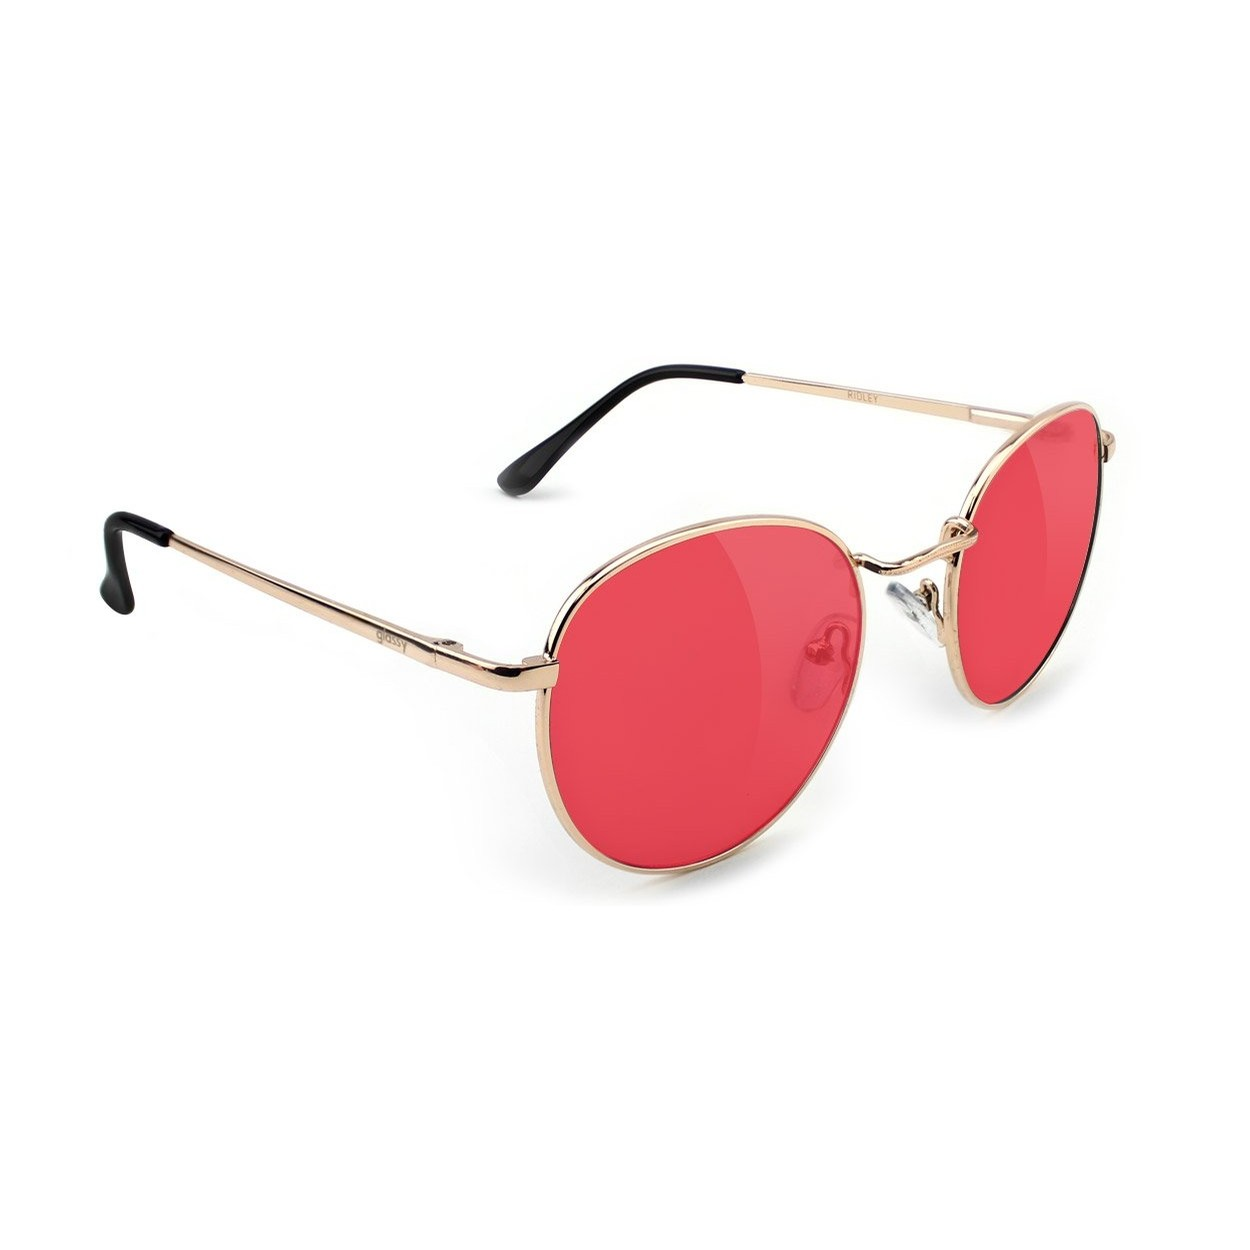 Ridley Sunglasses (Gold/Red Lens)